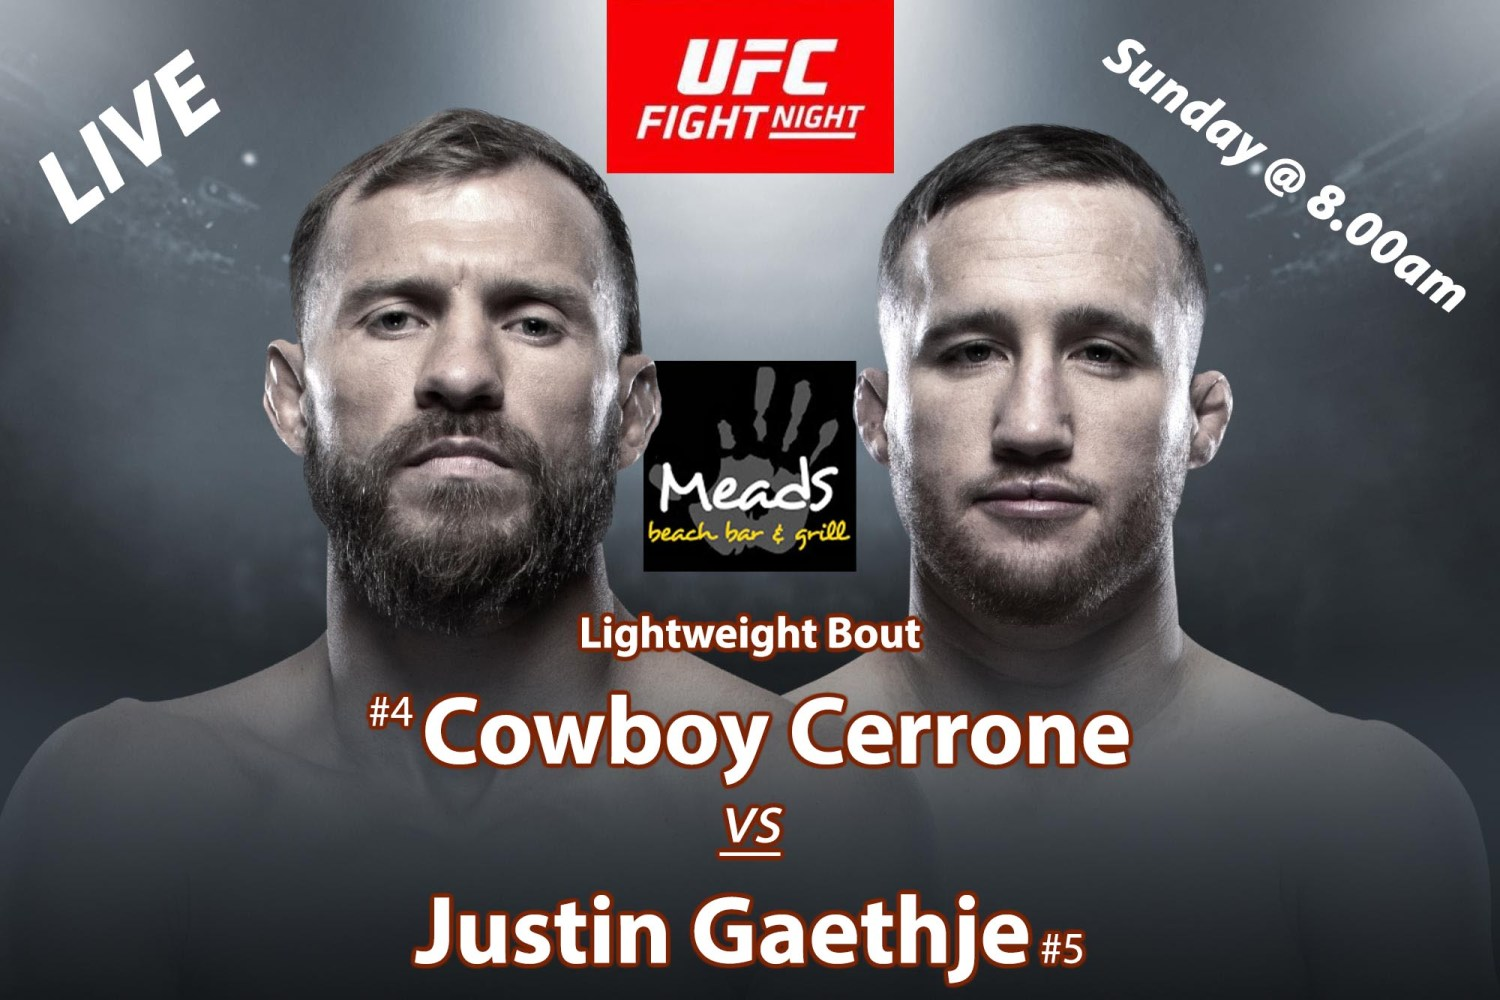 Cowboy Cerrone vs Justin Gaethje UFC Fight Night Live Meads in Bali